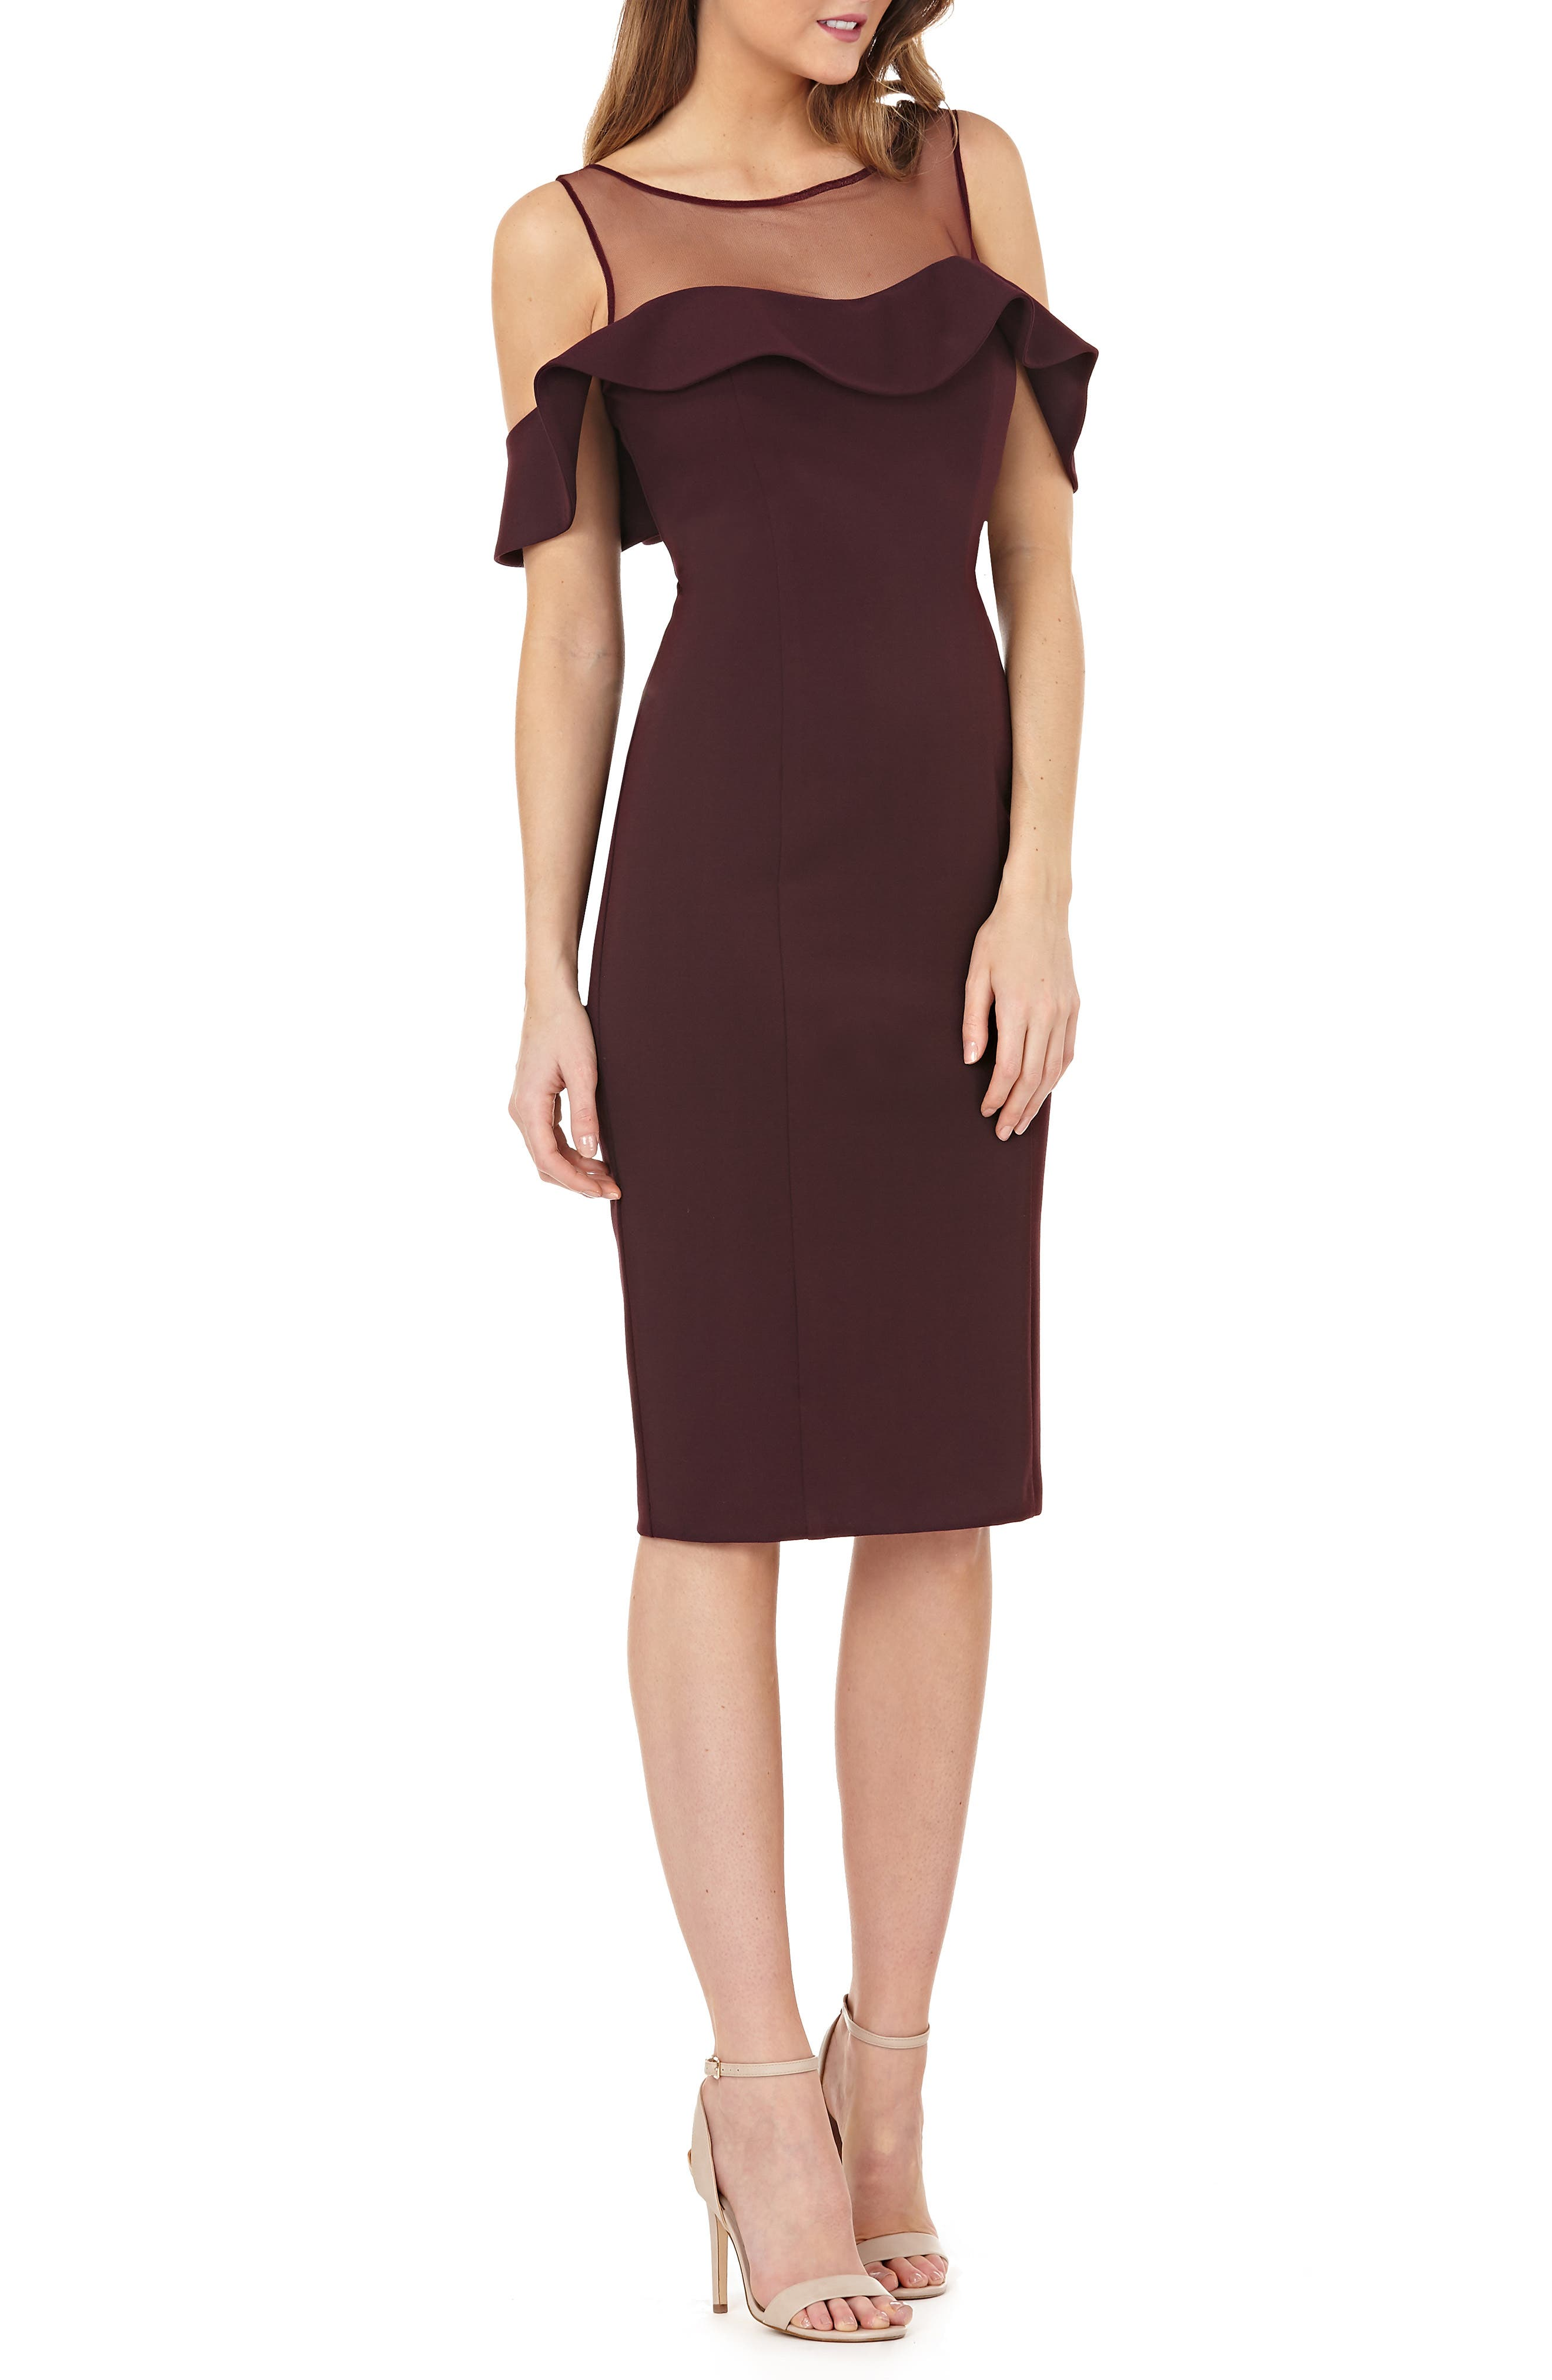 Js Collections Illusion Neck Ruffle Sleeve Cocktail Dress, Burgundy